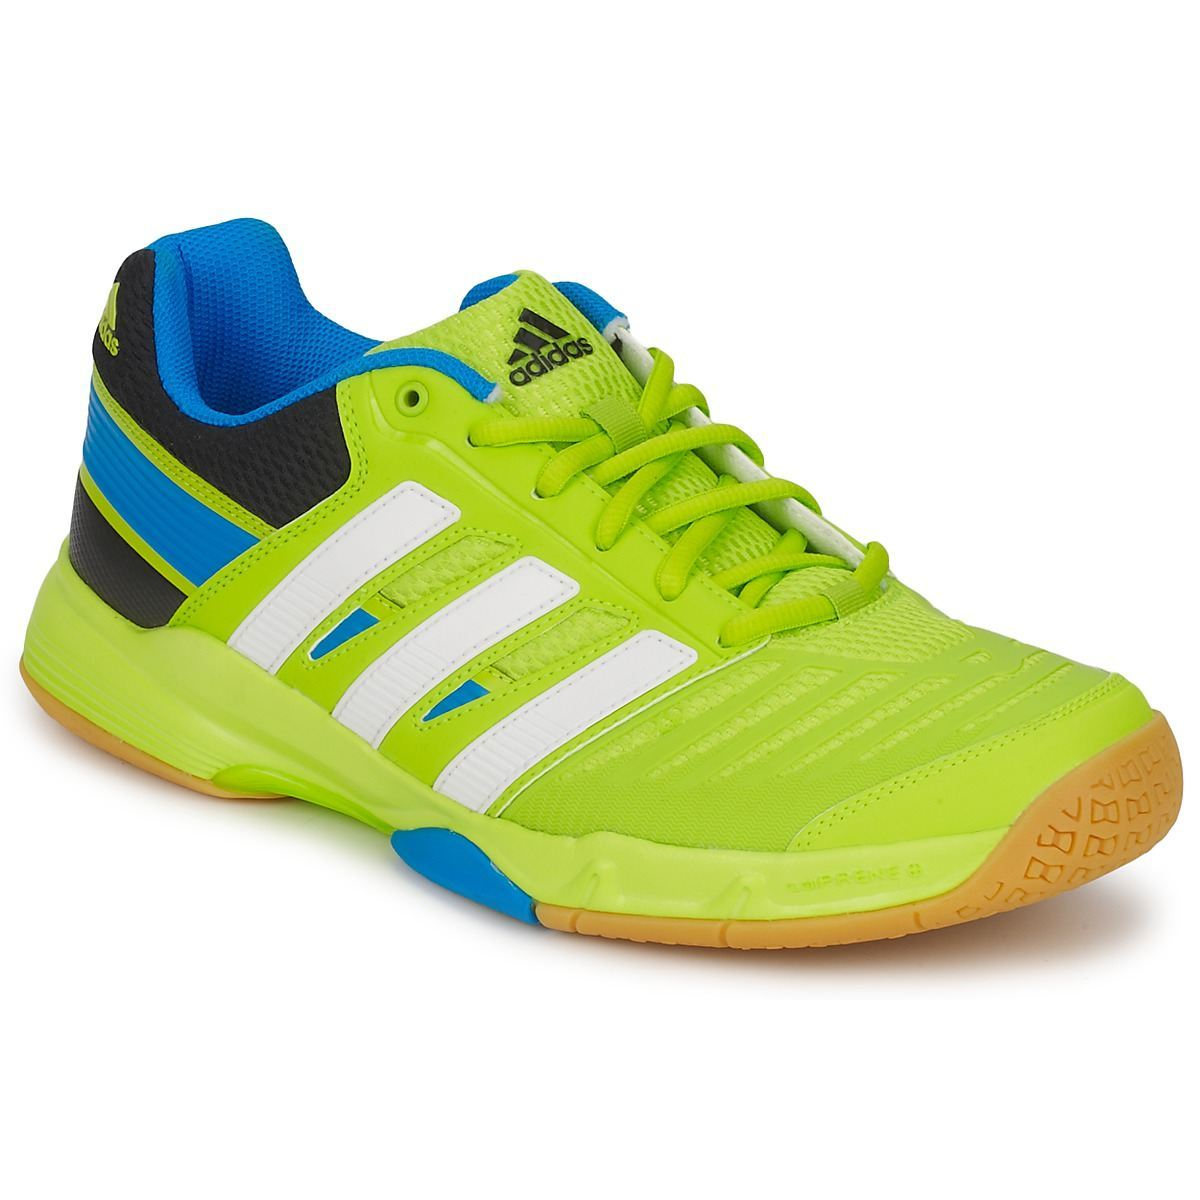 Adidas Court Stabil 10.1 Squash Shoes - Men's Green